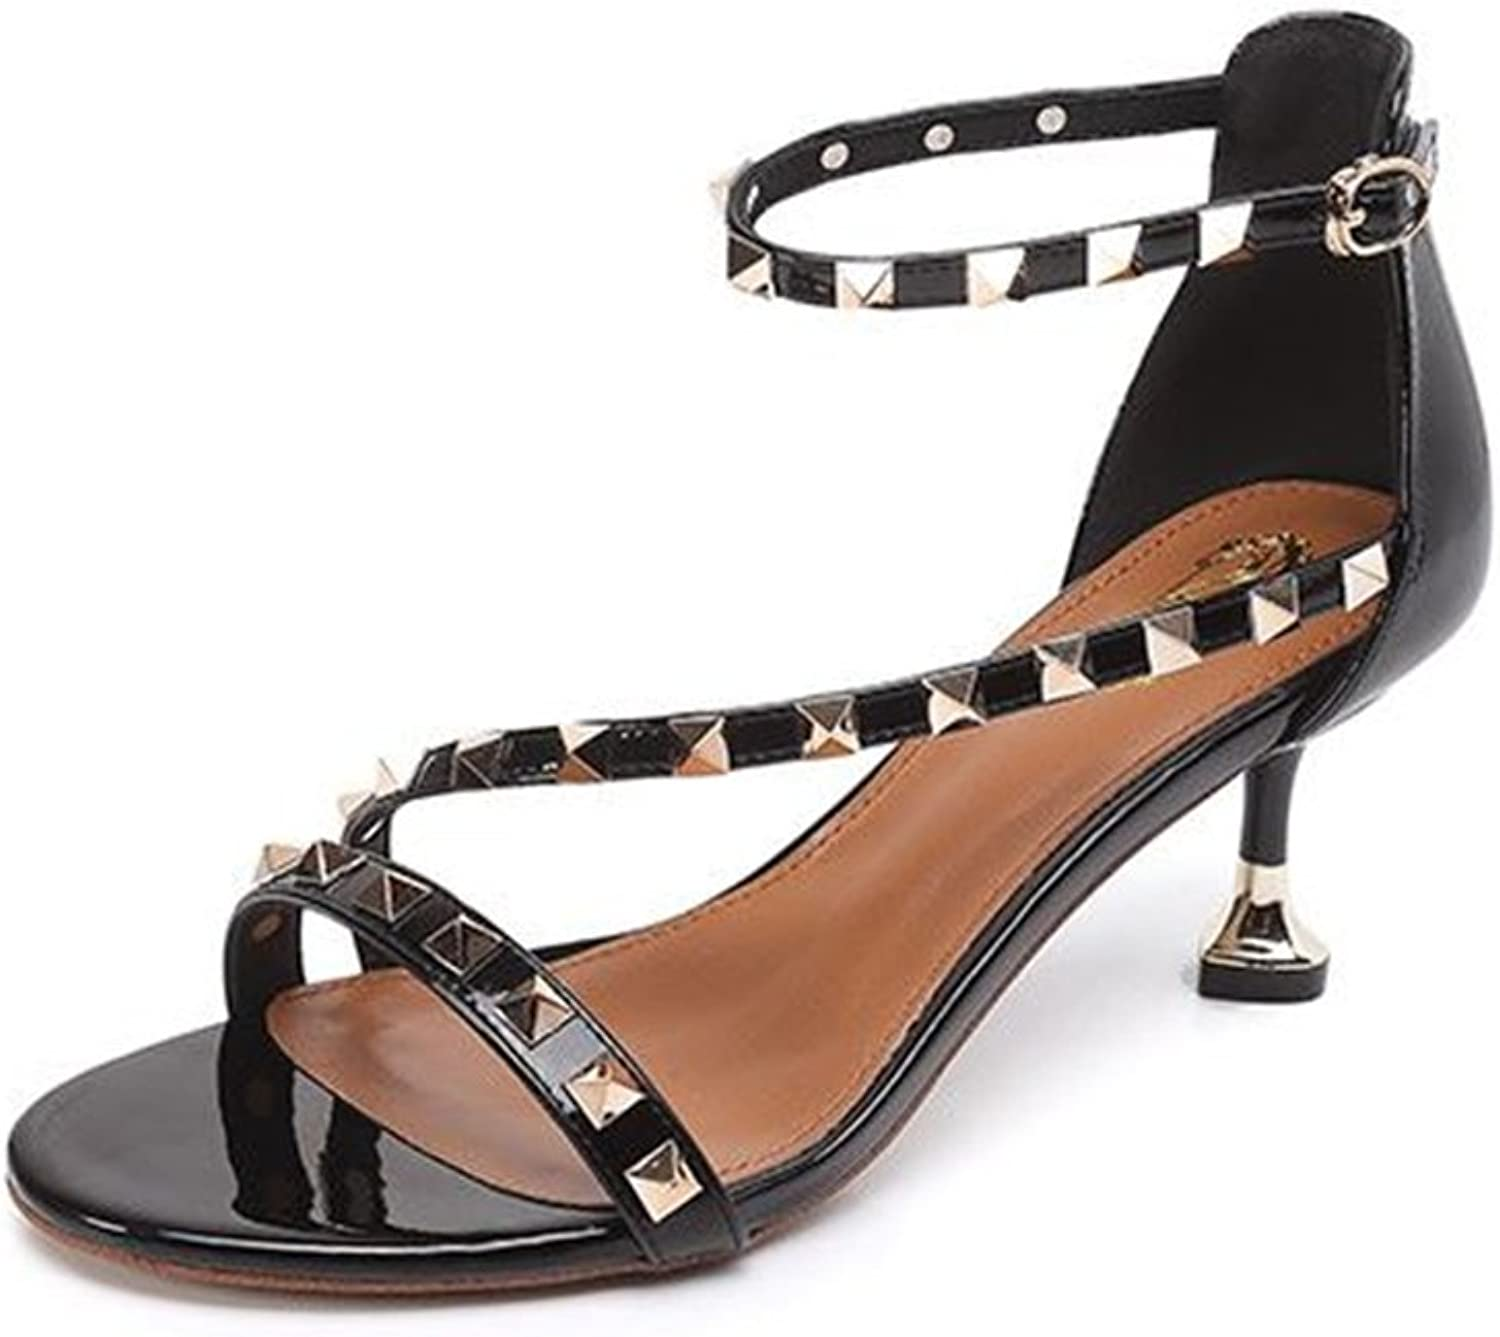 CHENSF Sexy Girl Thin High Heel Sandals Rivet Studded Ankle Cuff Cross-Strap shoes Dress Pumps